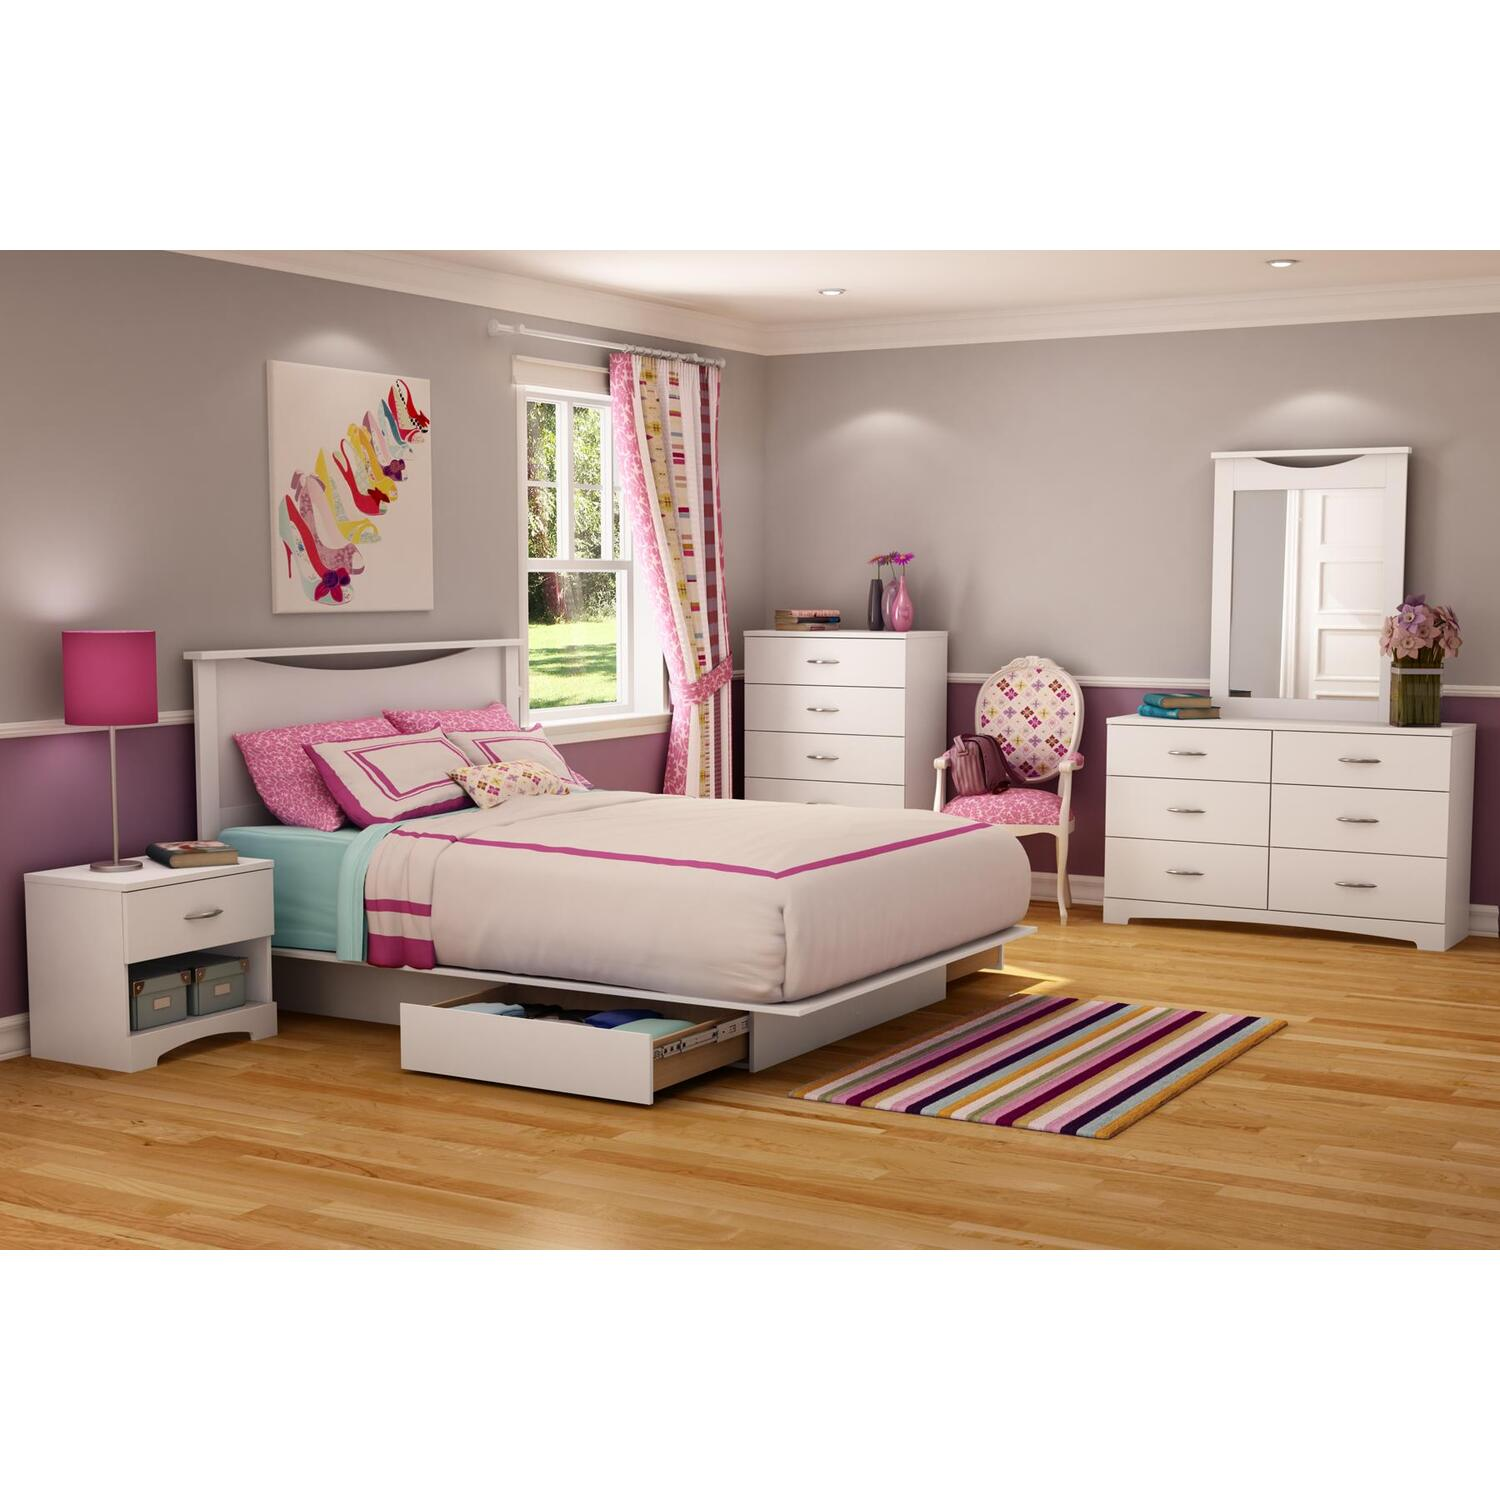 Furniture home goods appliances athletic gear fitness for White full bedroom furniture